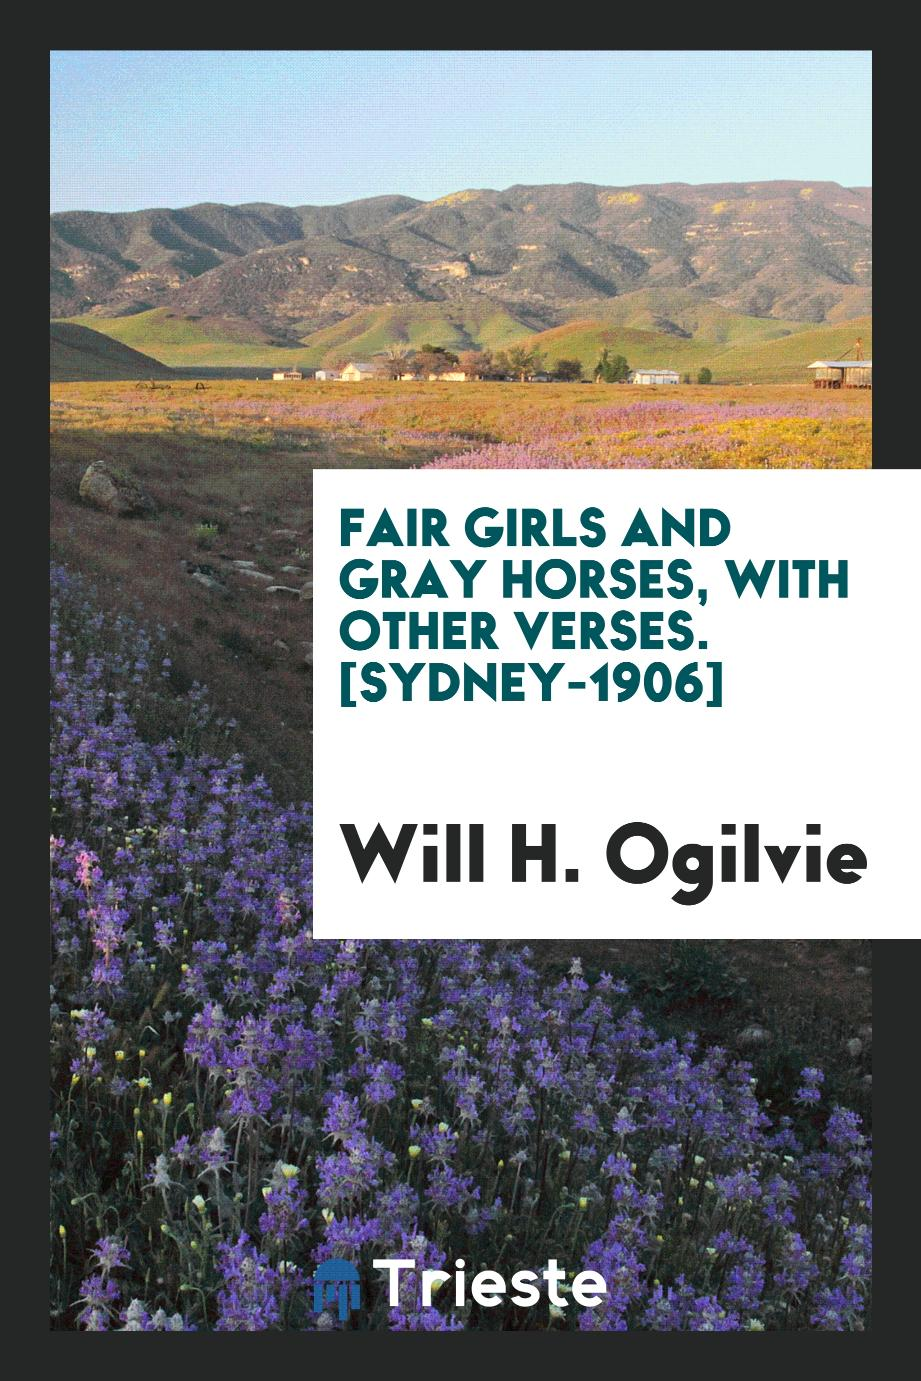 Will H. Ogilvie - Fair Girls and Gray Horses, with Other Verses. [Sydney-1906]